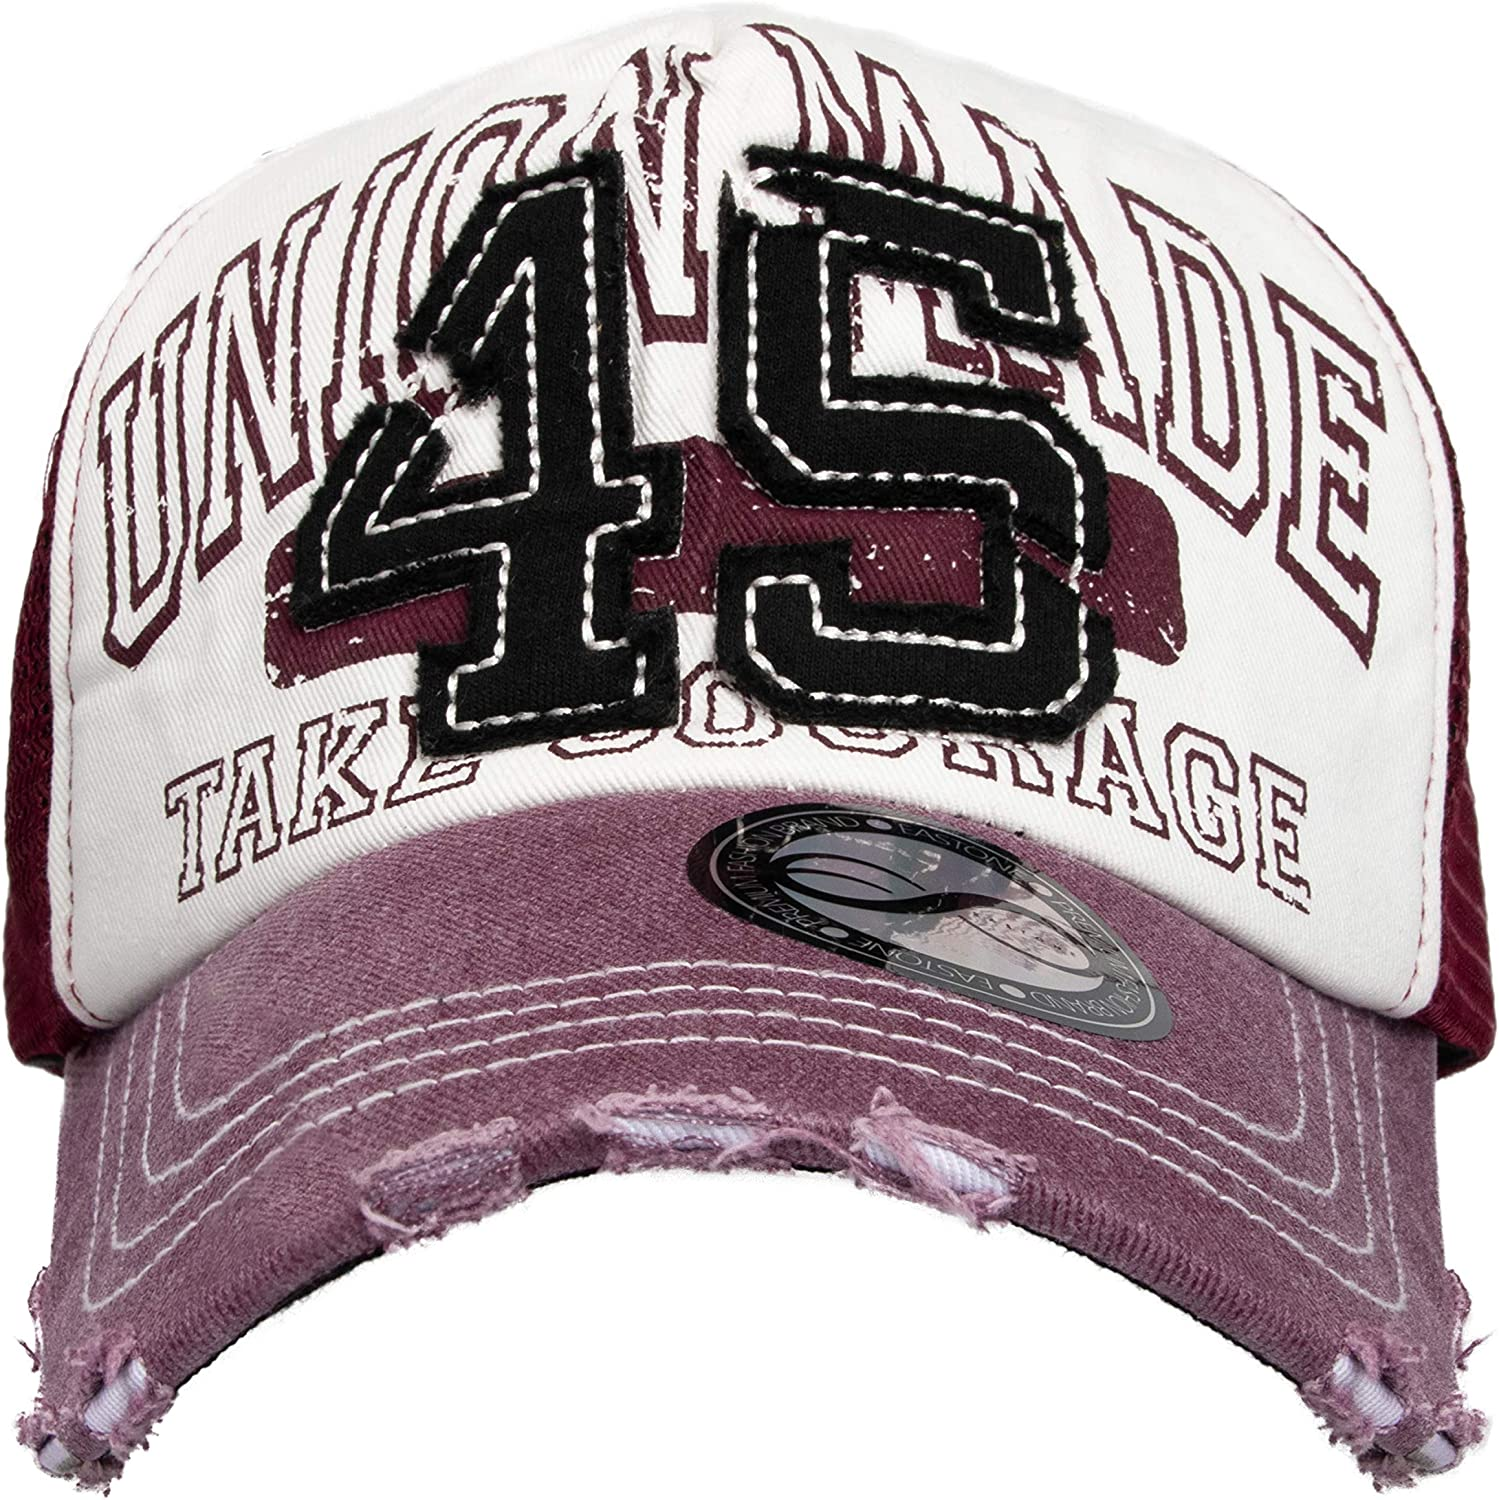 EASTONE Stitched 45 Baseball Cap Printed Union Made TAKE Courage Distressed Mesh Adjustable Cotton Trucker Hat